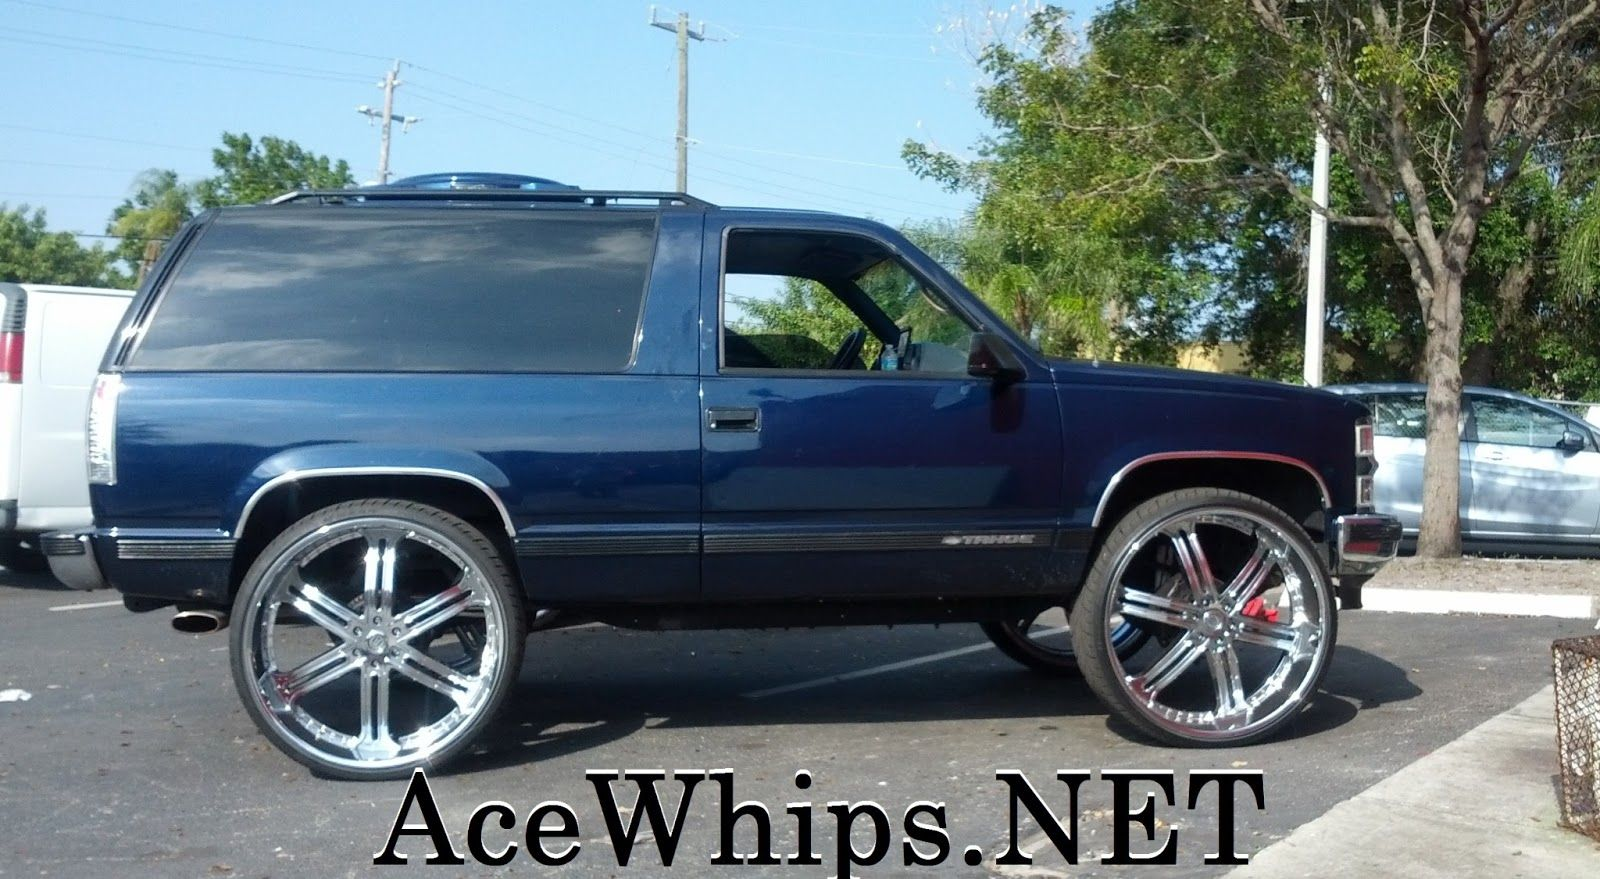 medium resolution of 30 inch rims on impala ace 1 wtw customs 2dr chevy tahoe on 30 versante rims